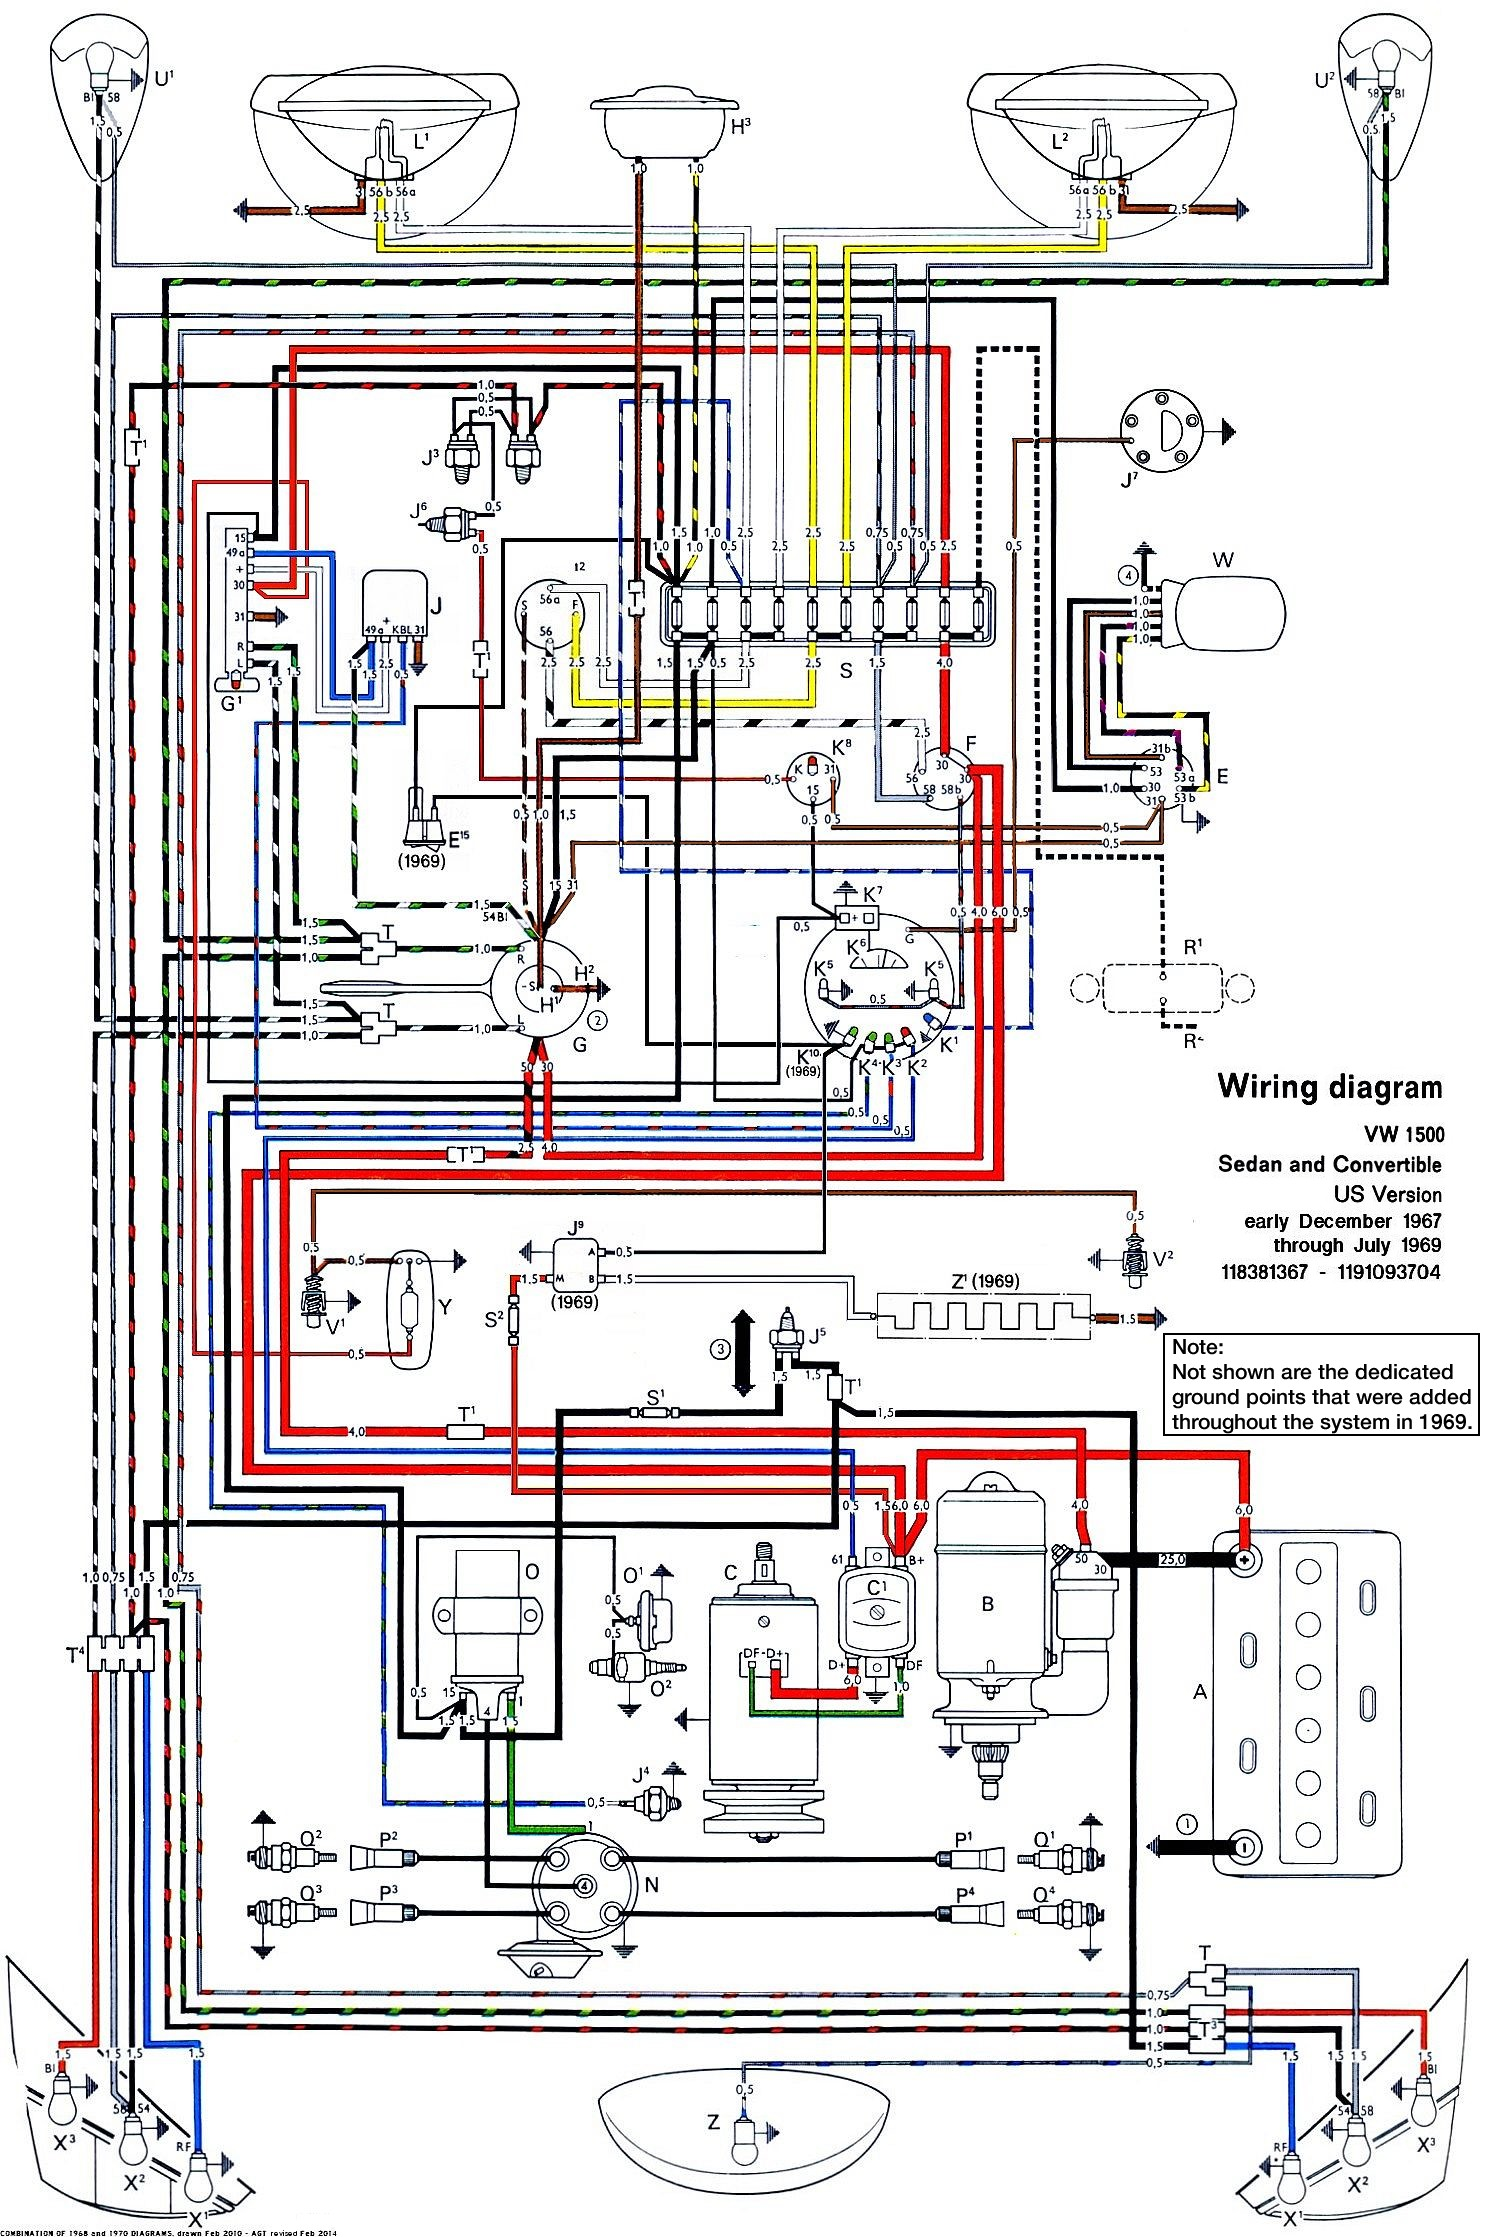 need a simple wiring diagram for turn signals on a 69 beetle the rh socalautoparts com 69 vw bug horn wiring 69 vw beetle wiring harness